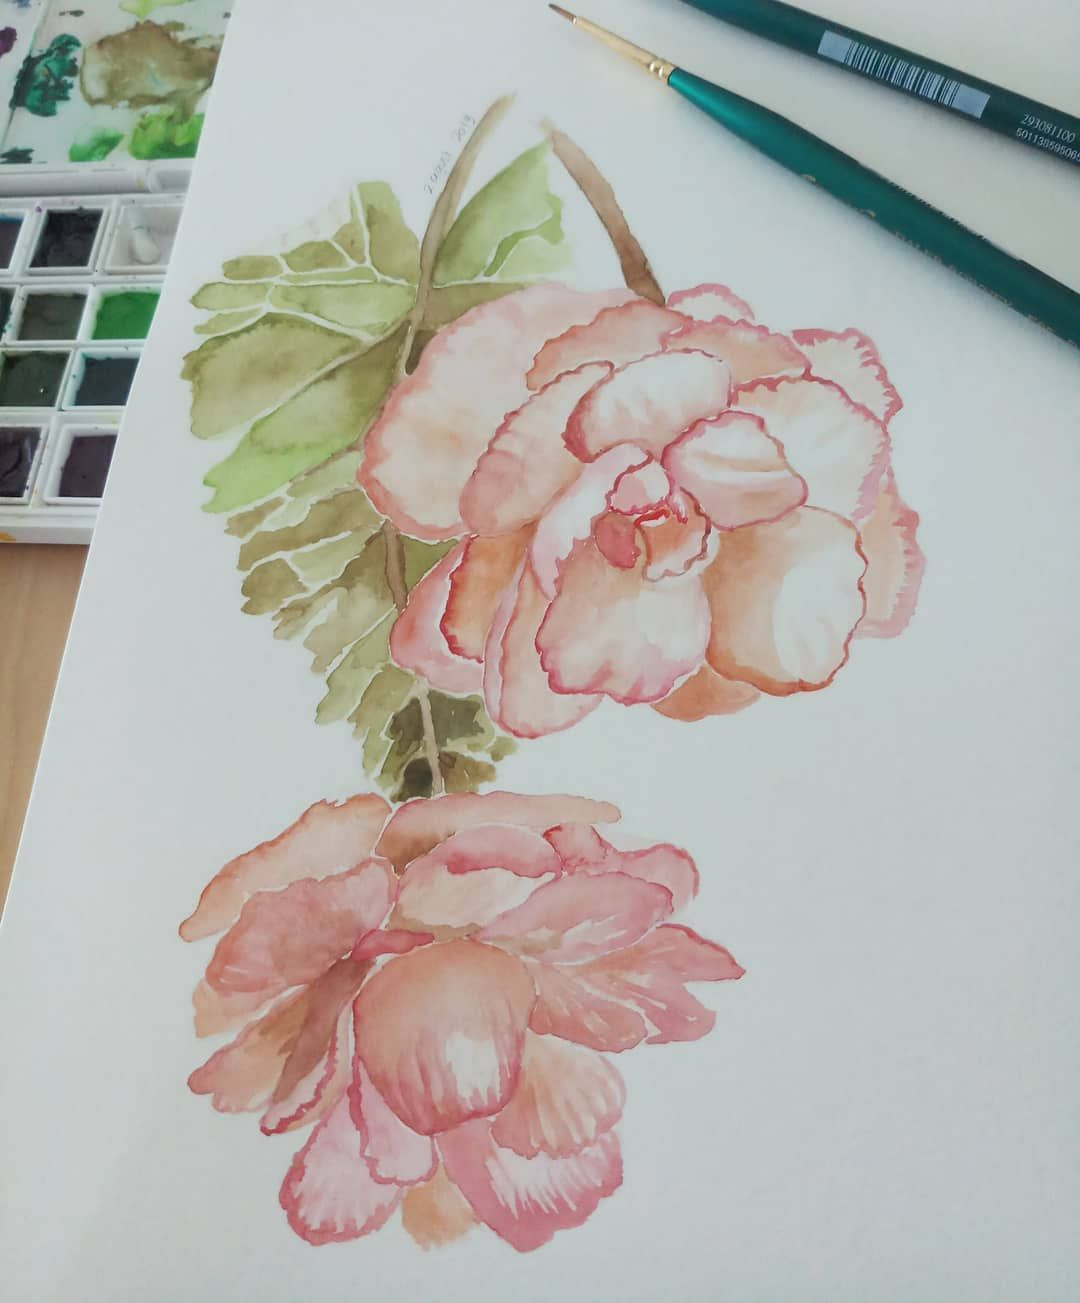 Pin By Varvara On Draw It In 2020 Botanical Painting Painting